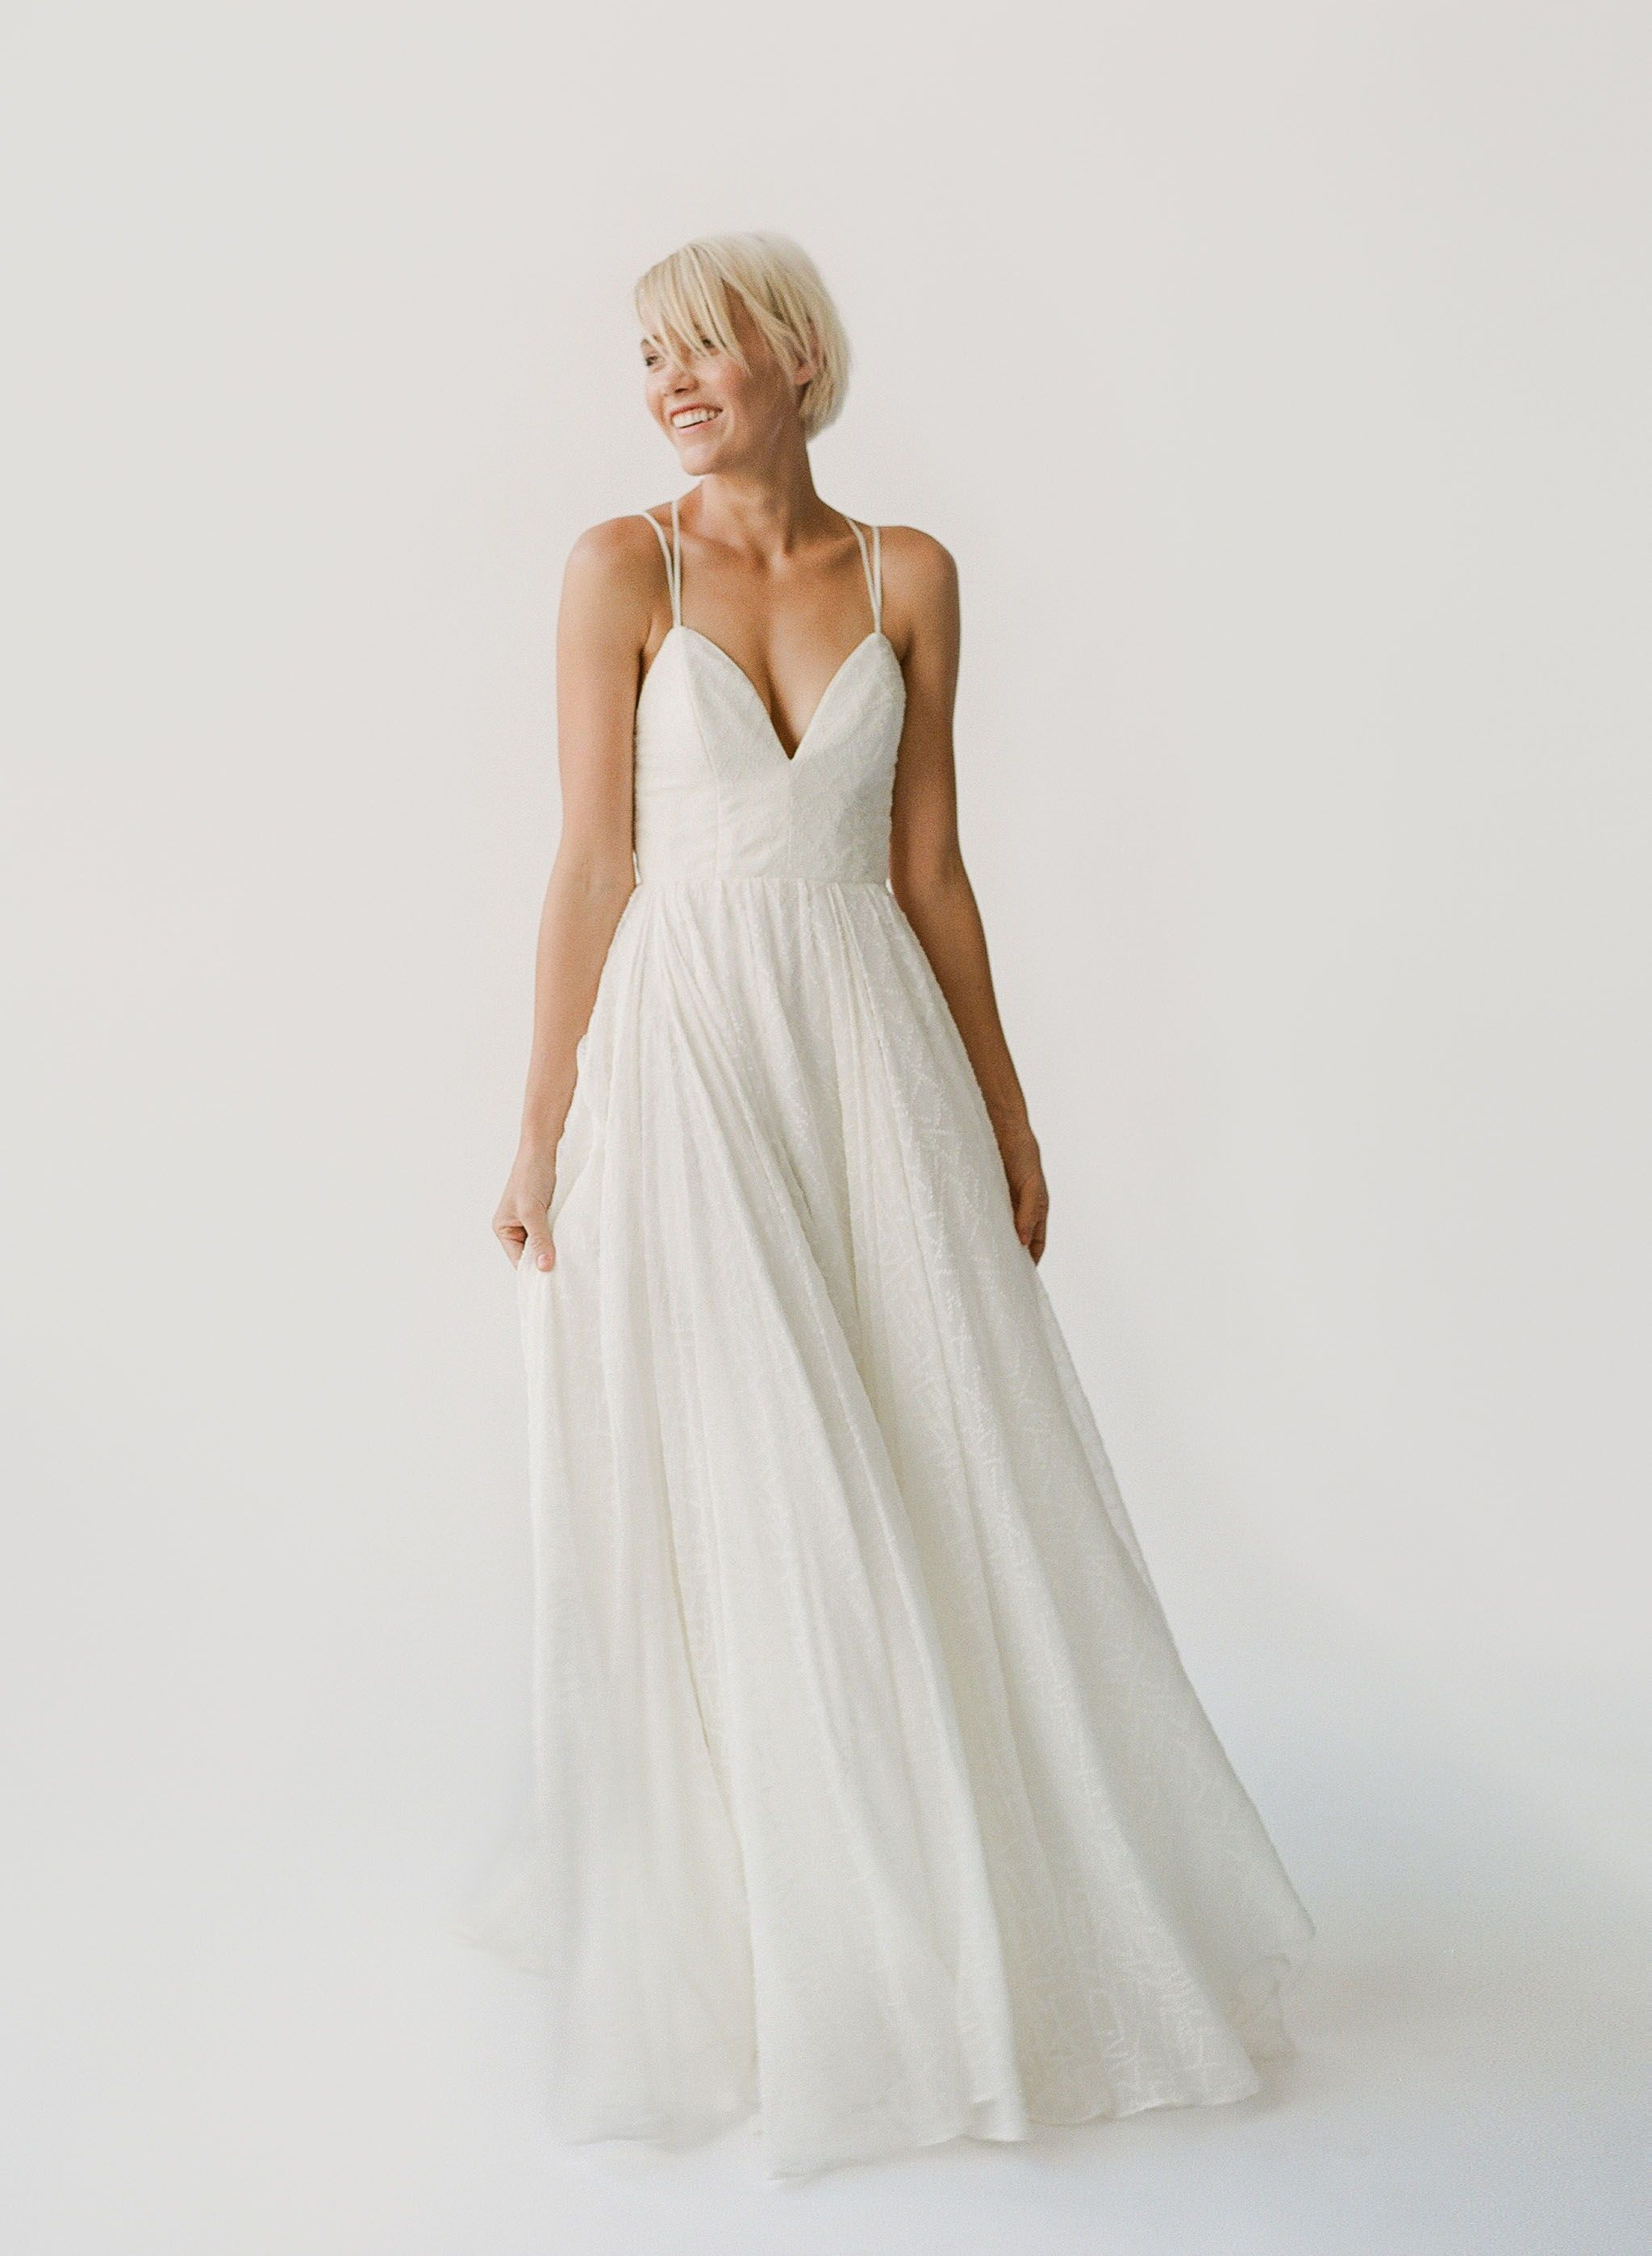 Truvelleus collection pamela by truvelle romantic wedding